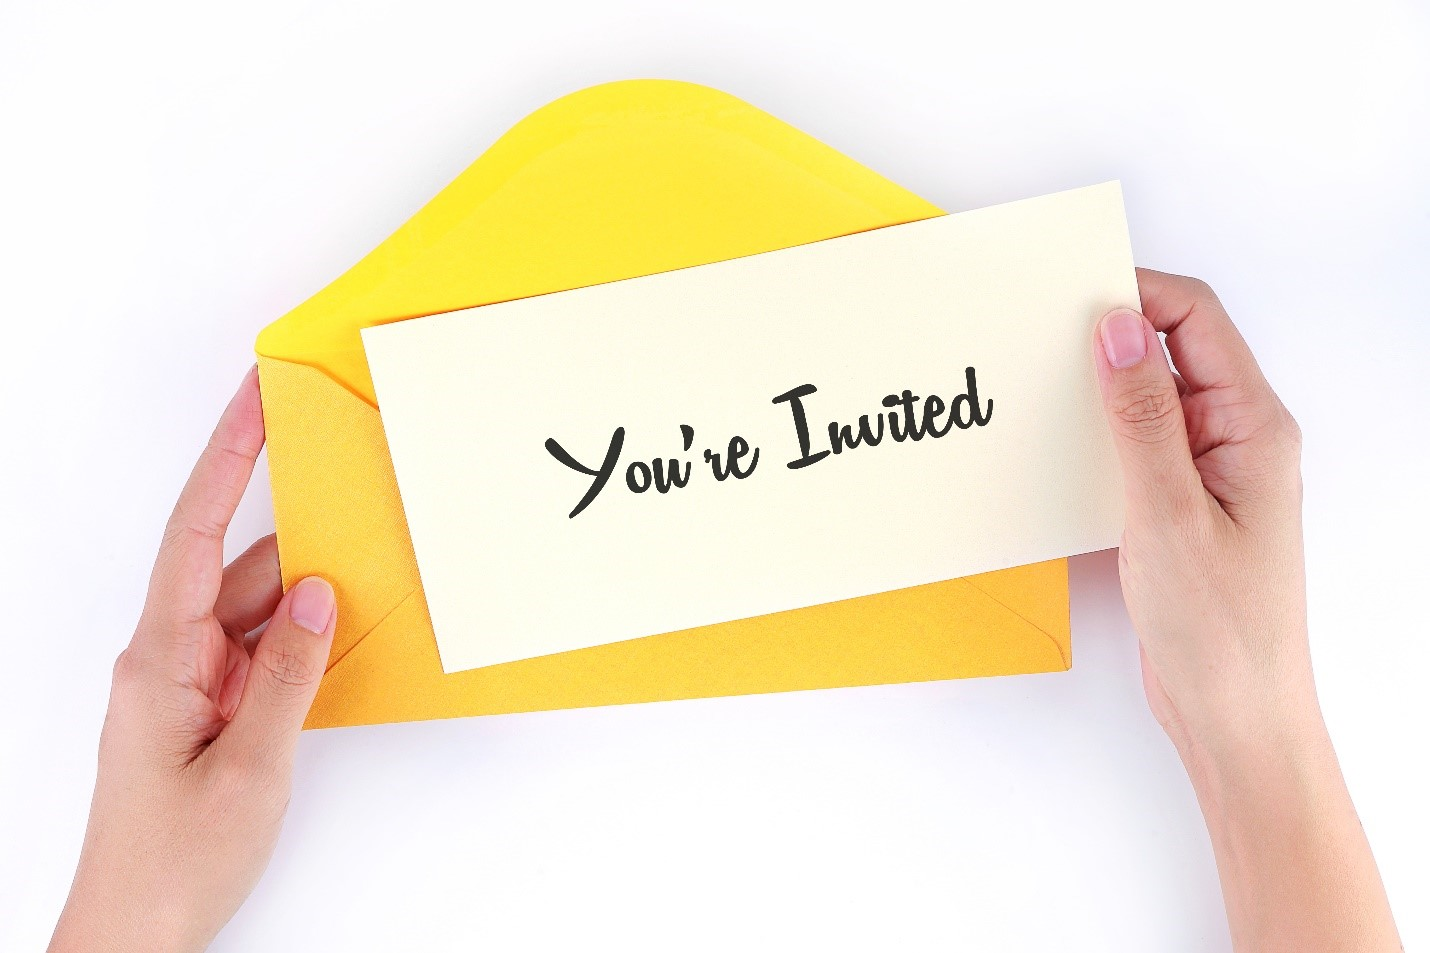 How to Improve Your Event Marketing With Better Event Invitations